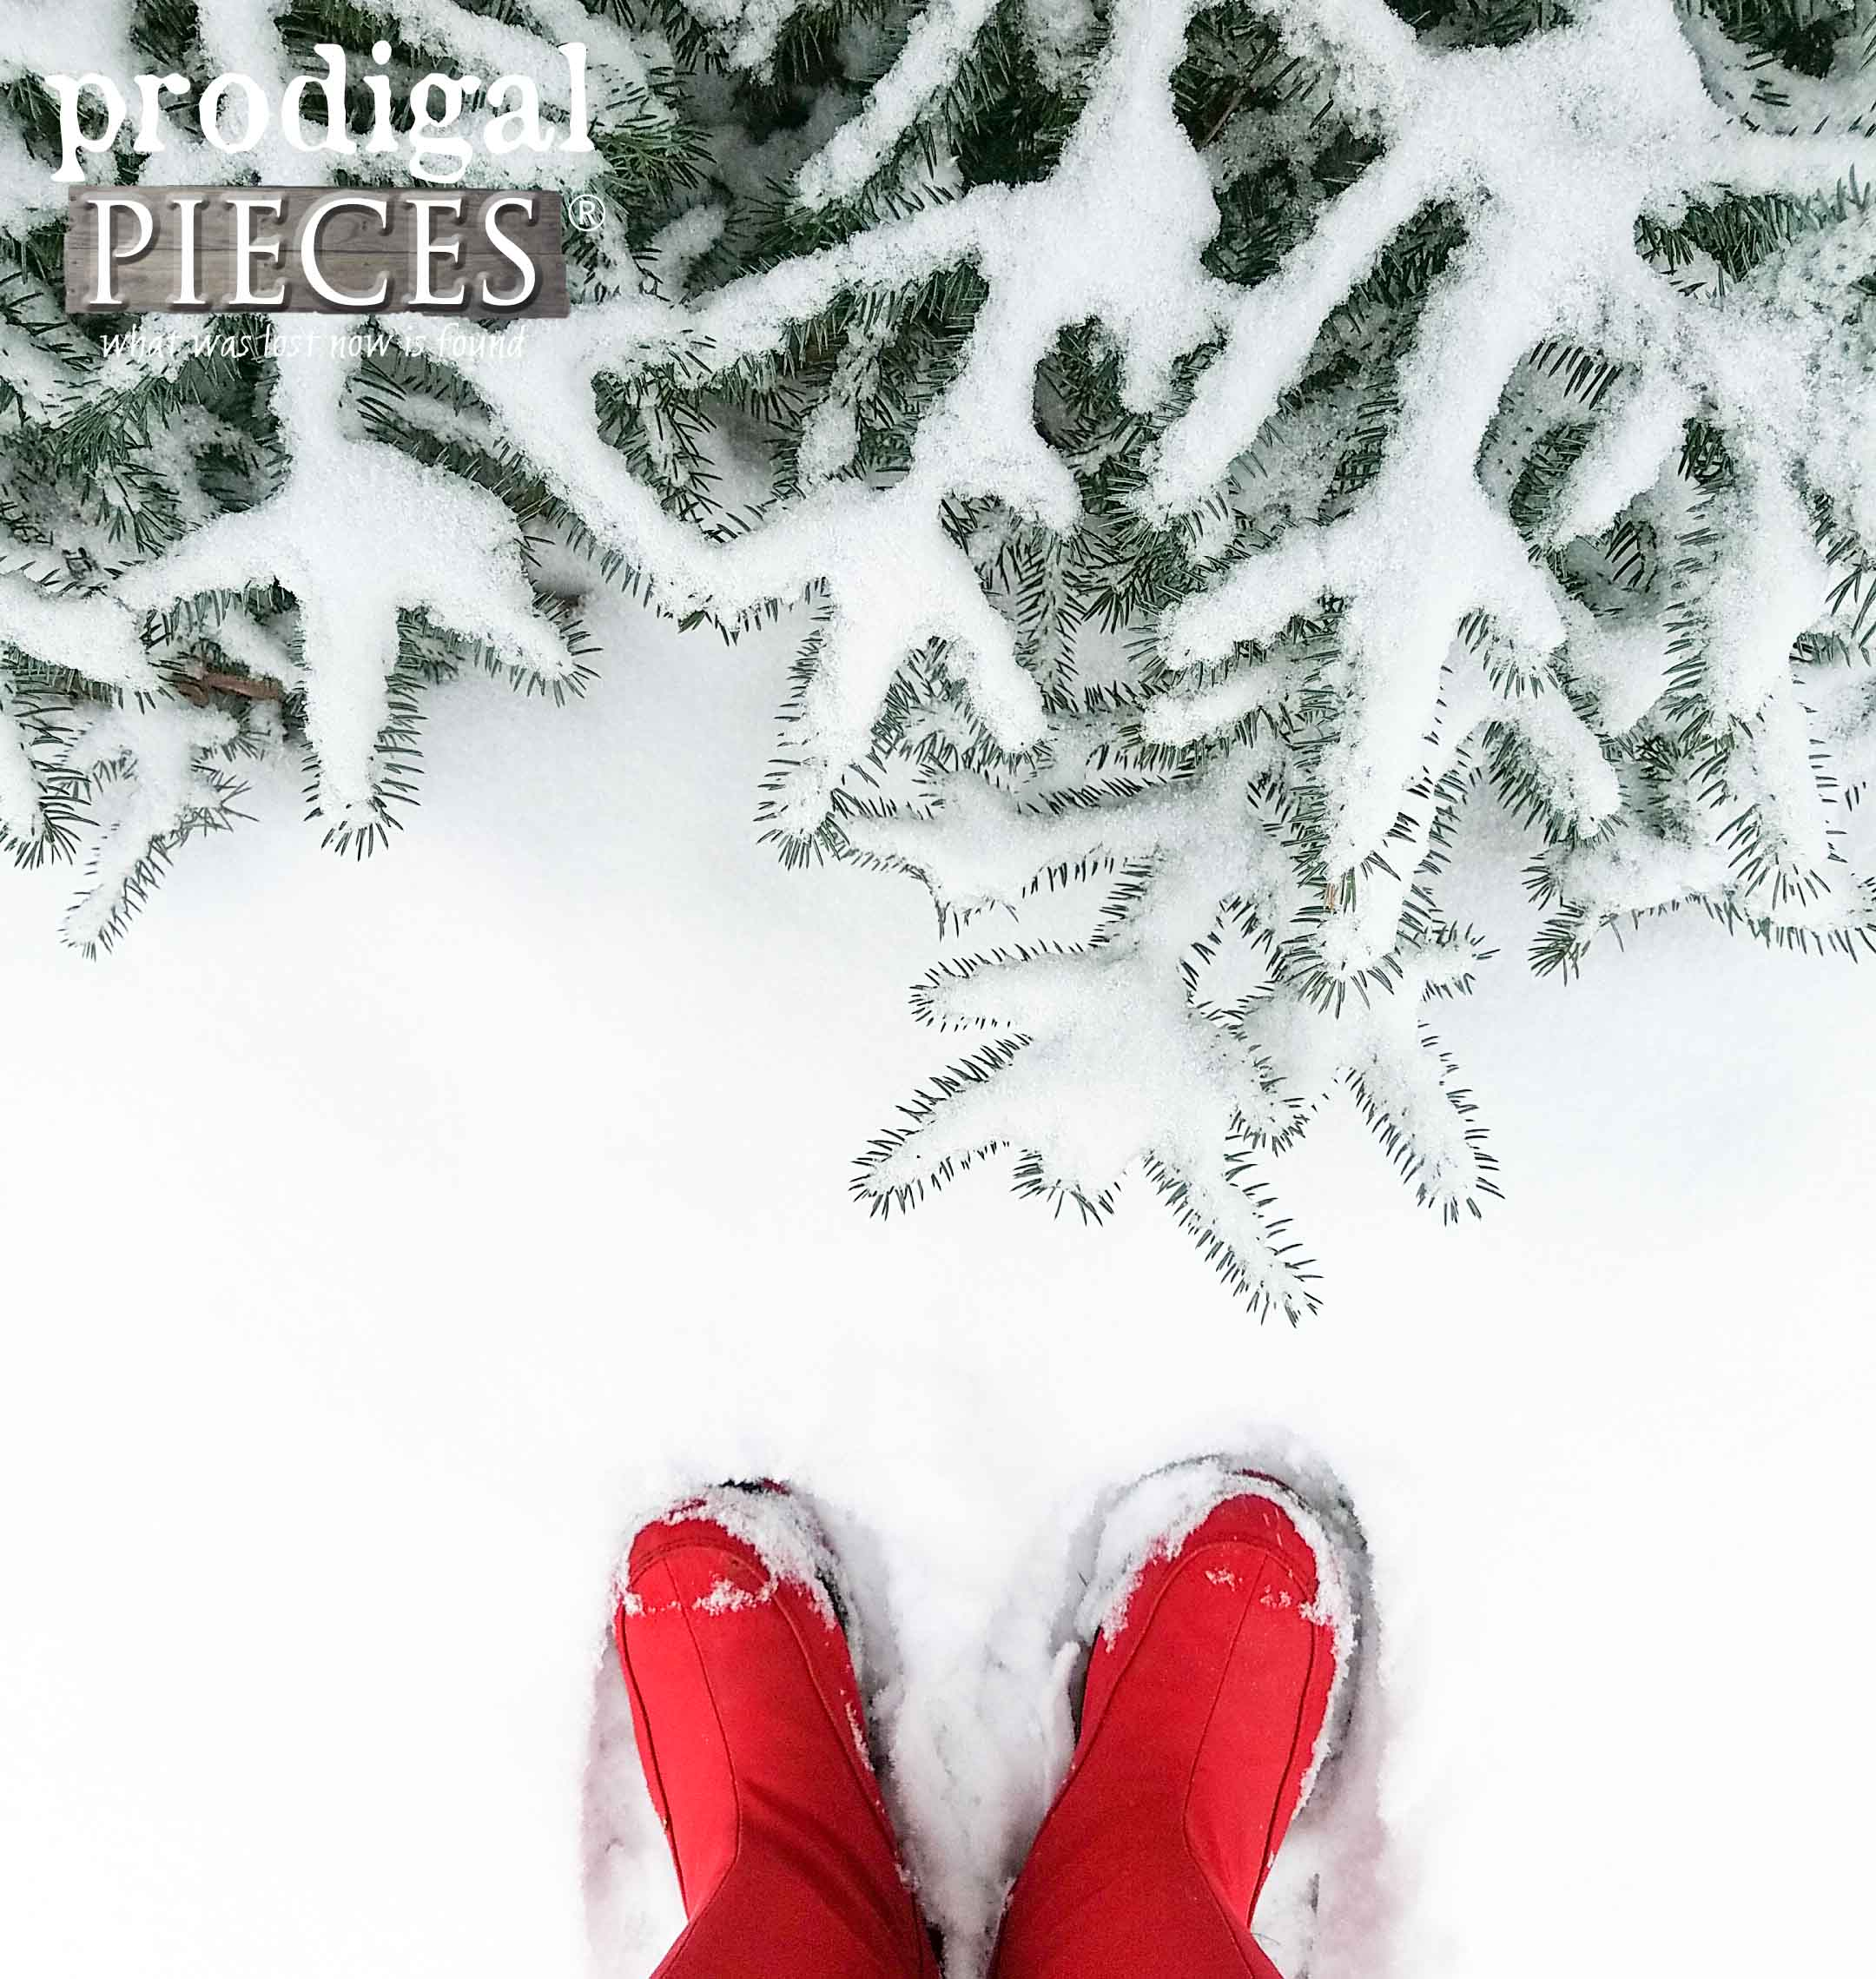 Red Boots in Fresh Fallen Snow | Prodigal Pieces | prodigalpieces.com